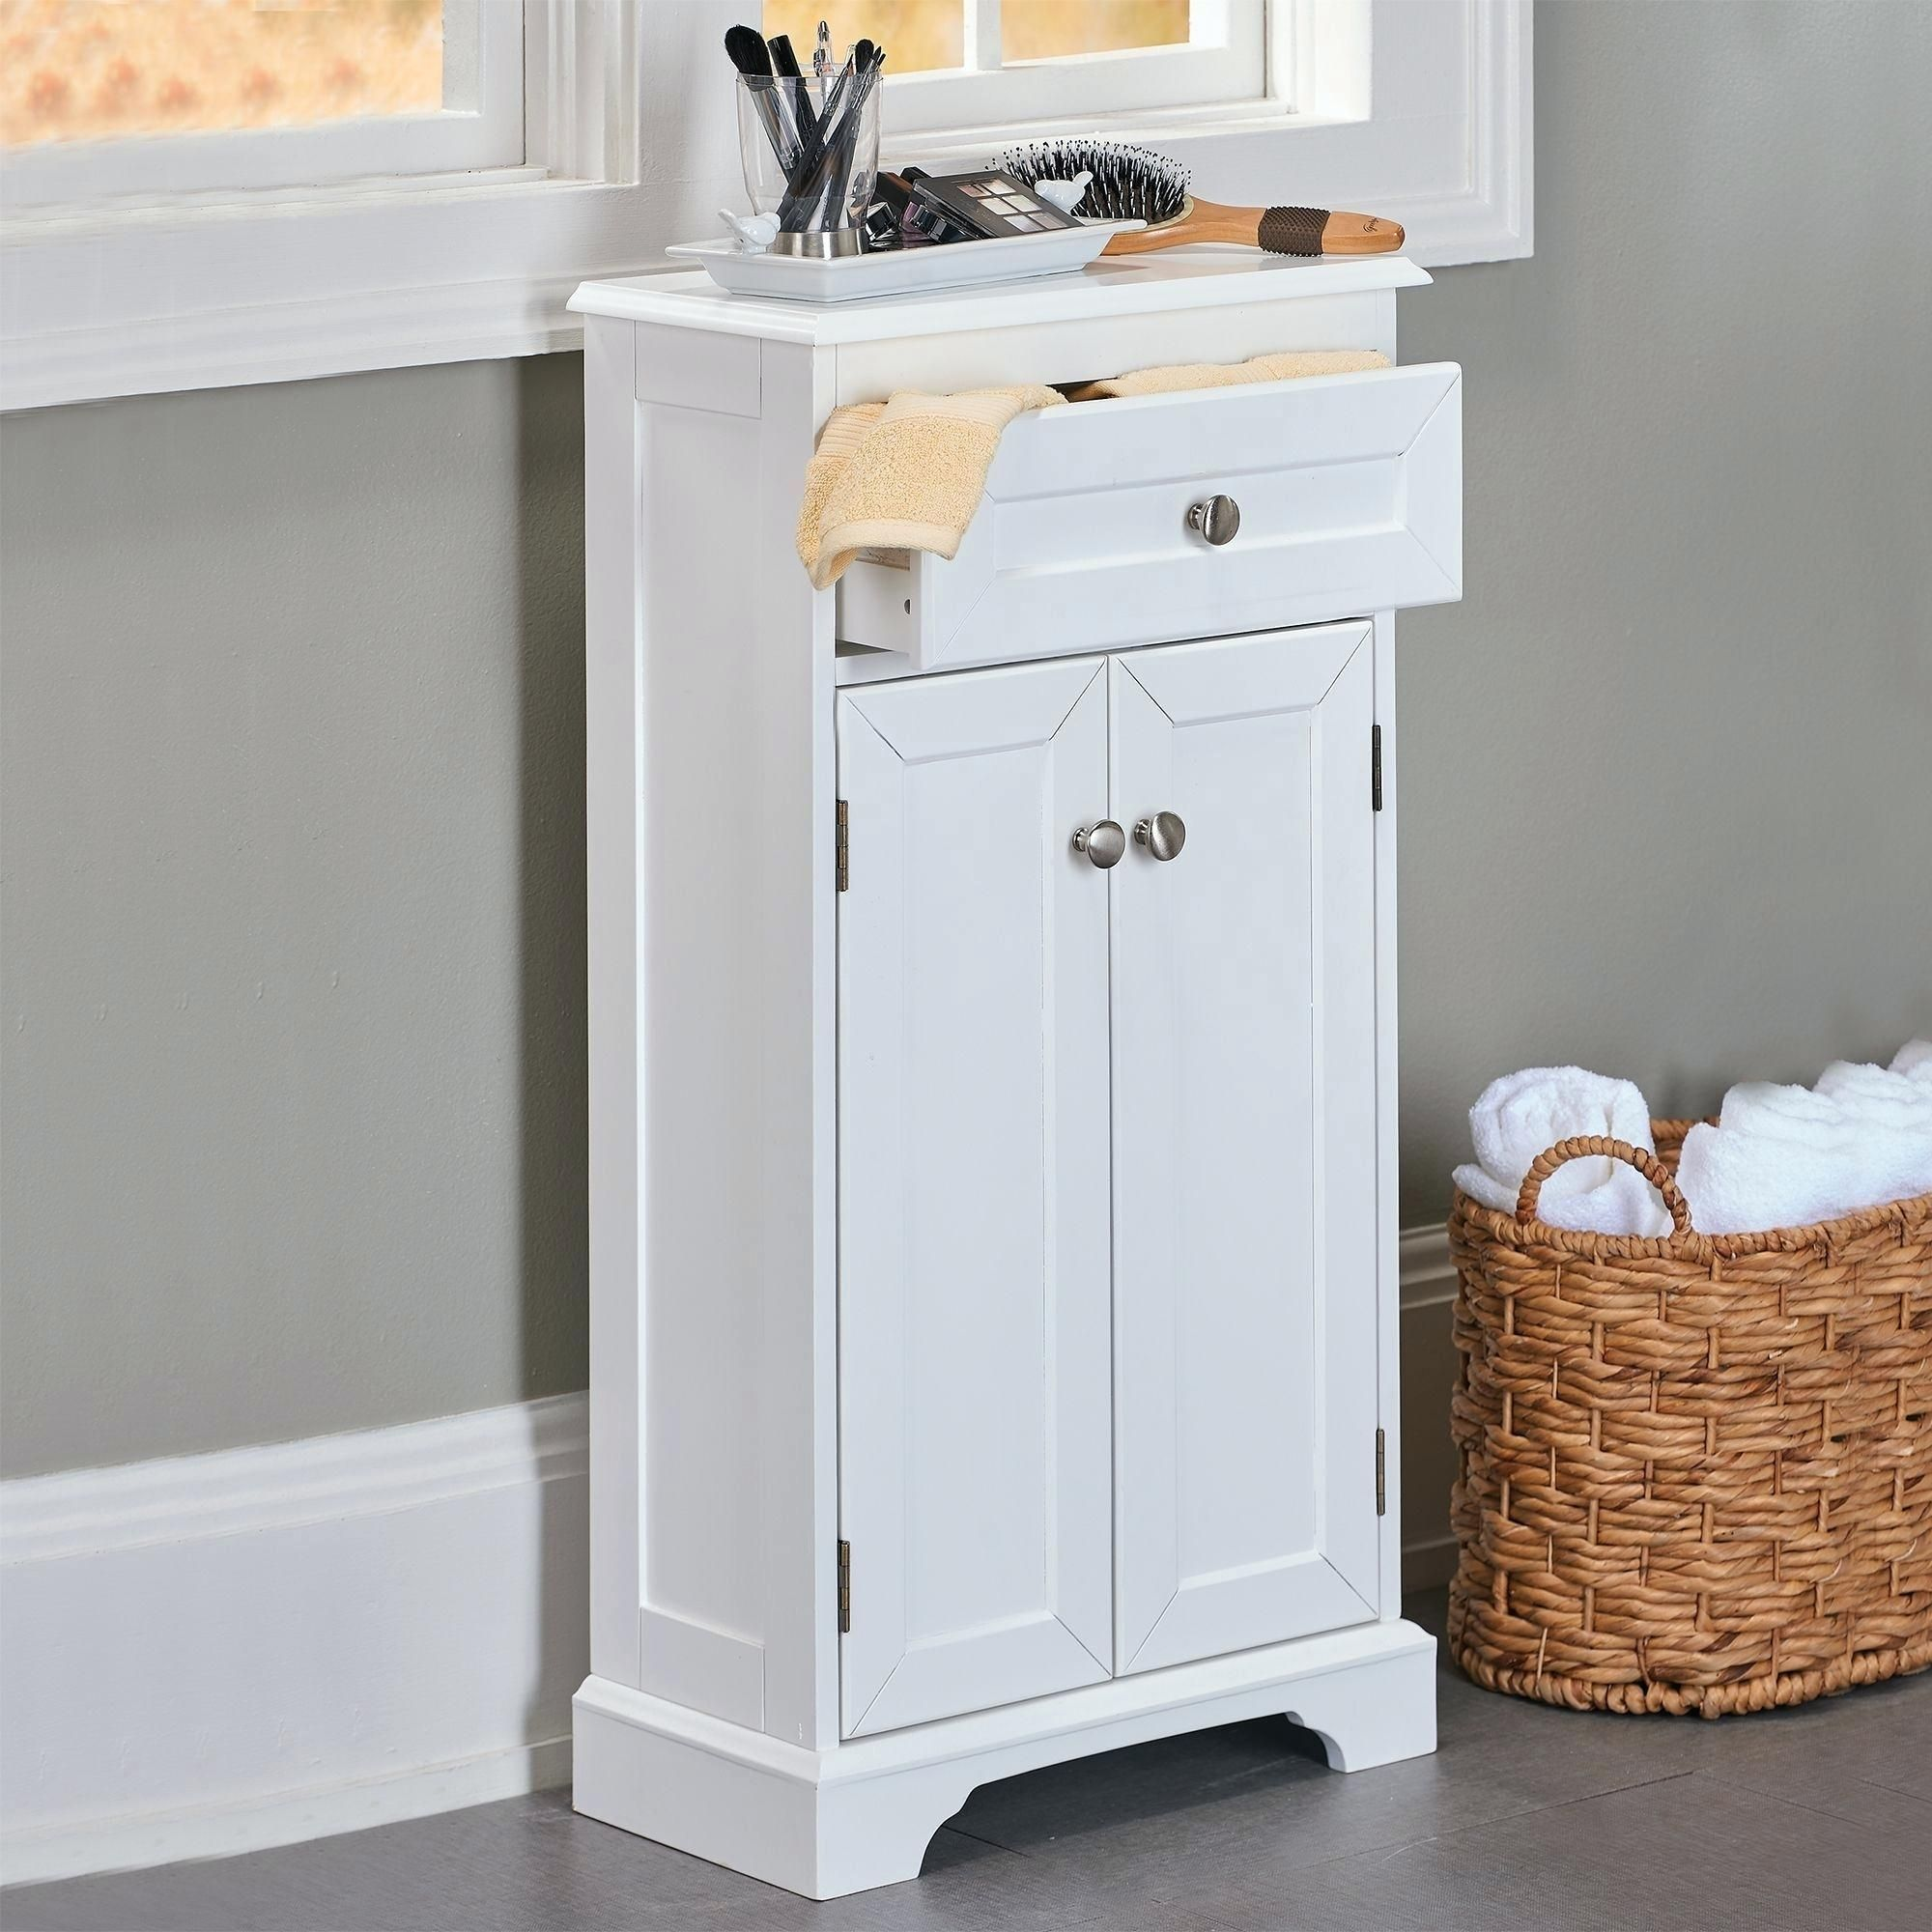 Slimline Bathroom Storage Tower | Bathroom Ideas | Pinterest ...